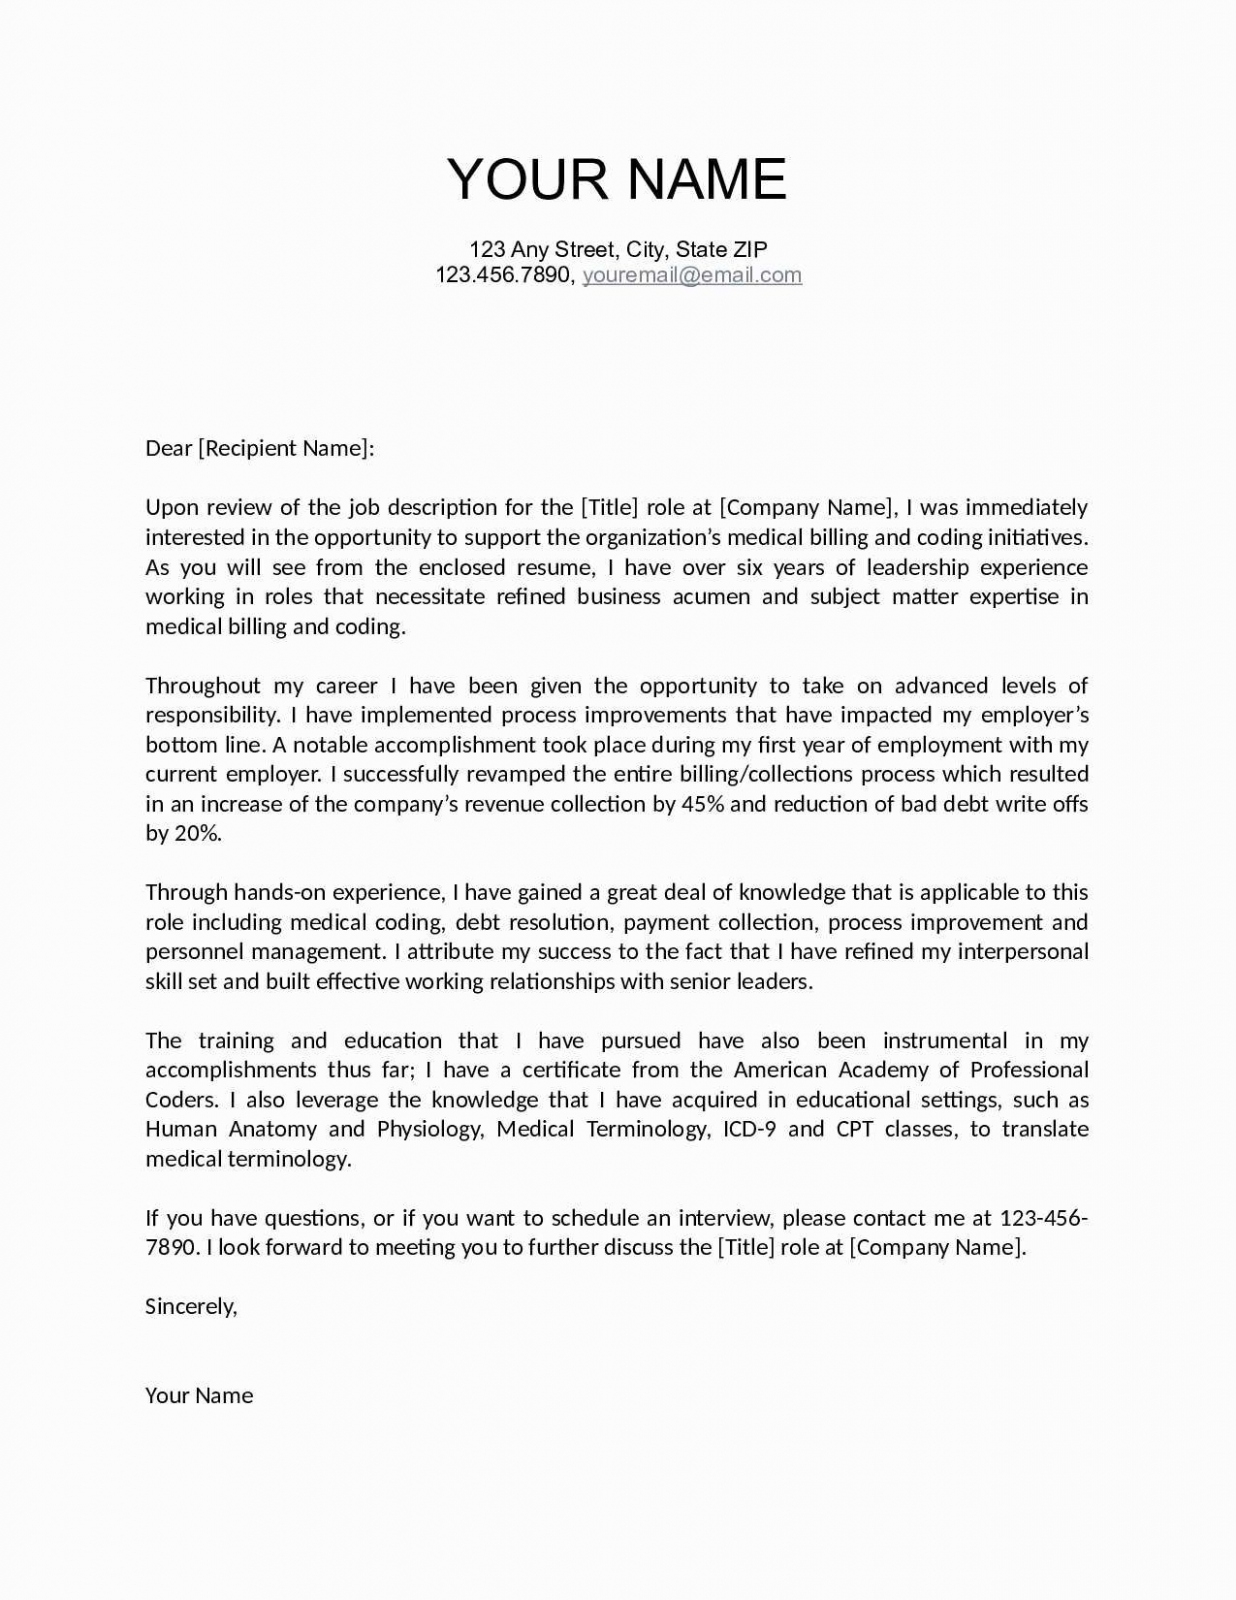 Rejection Letter Template after Interview - Resume Rejection Email — Resumes Project